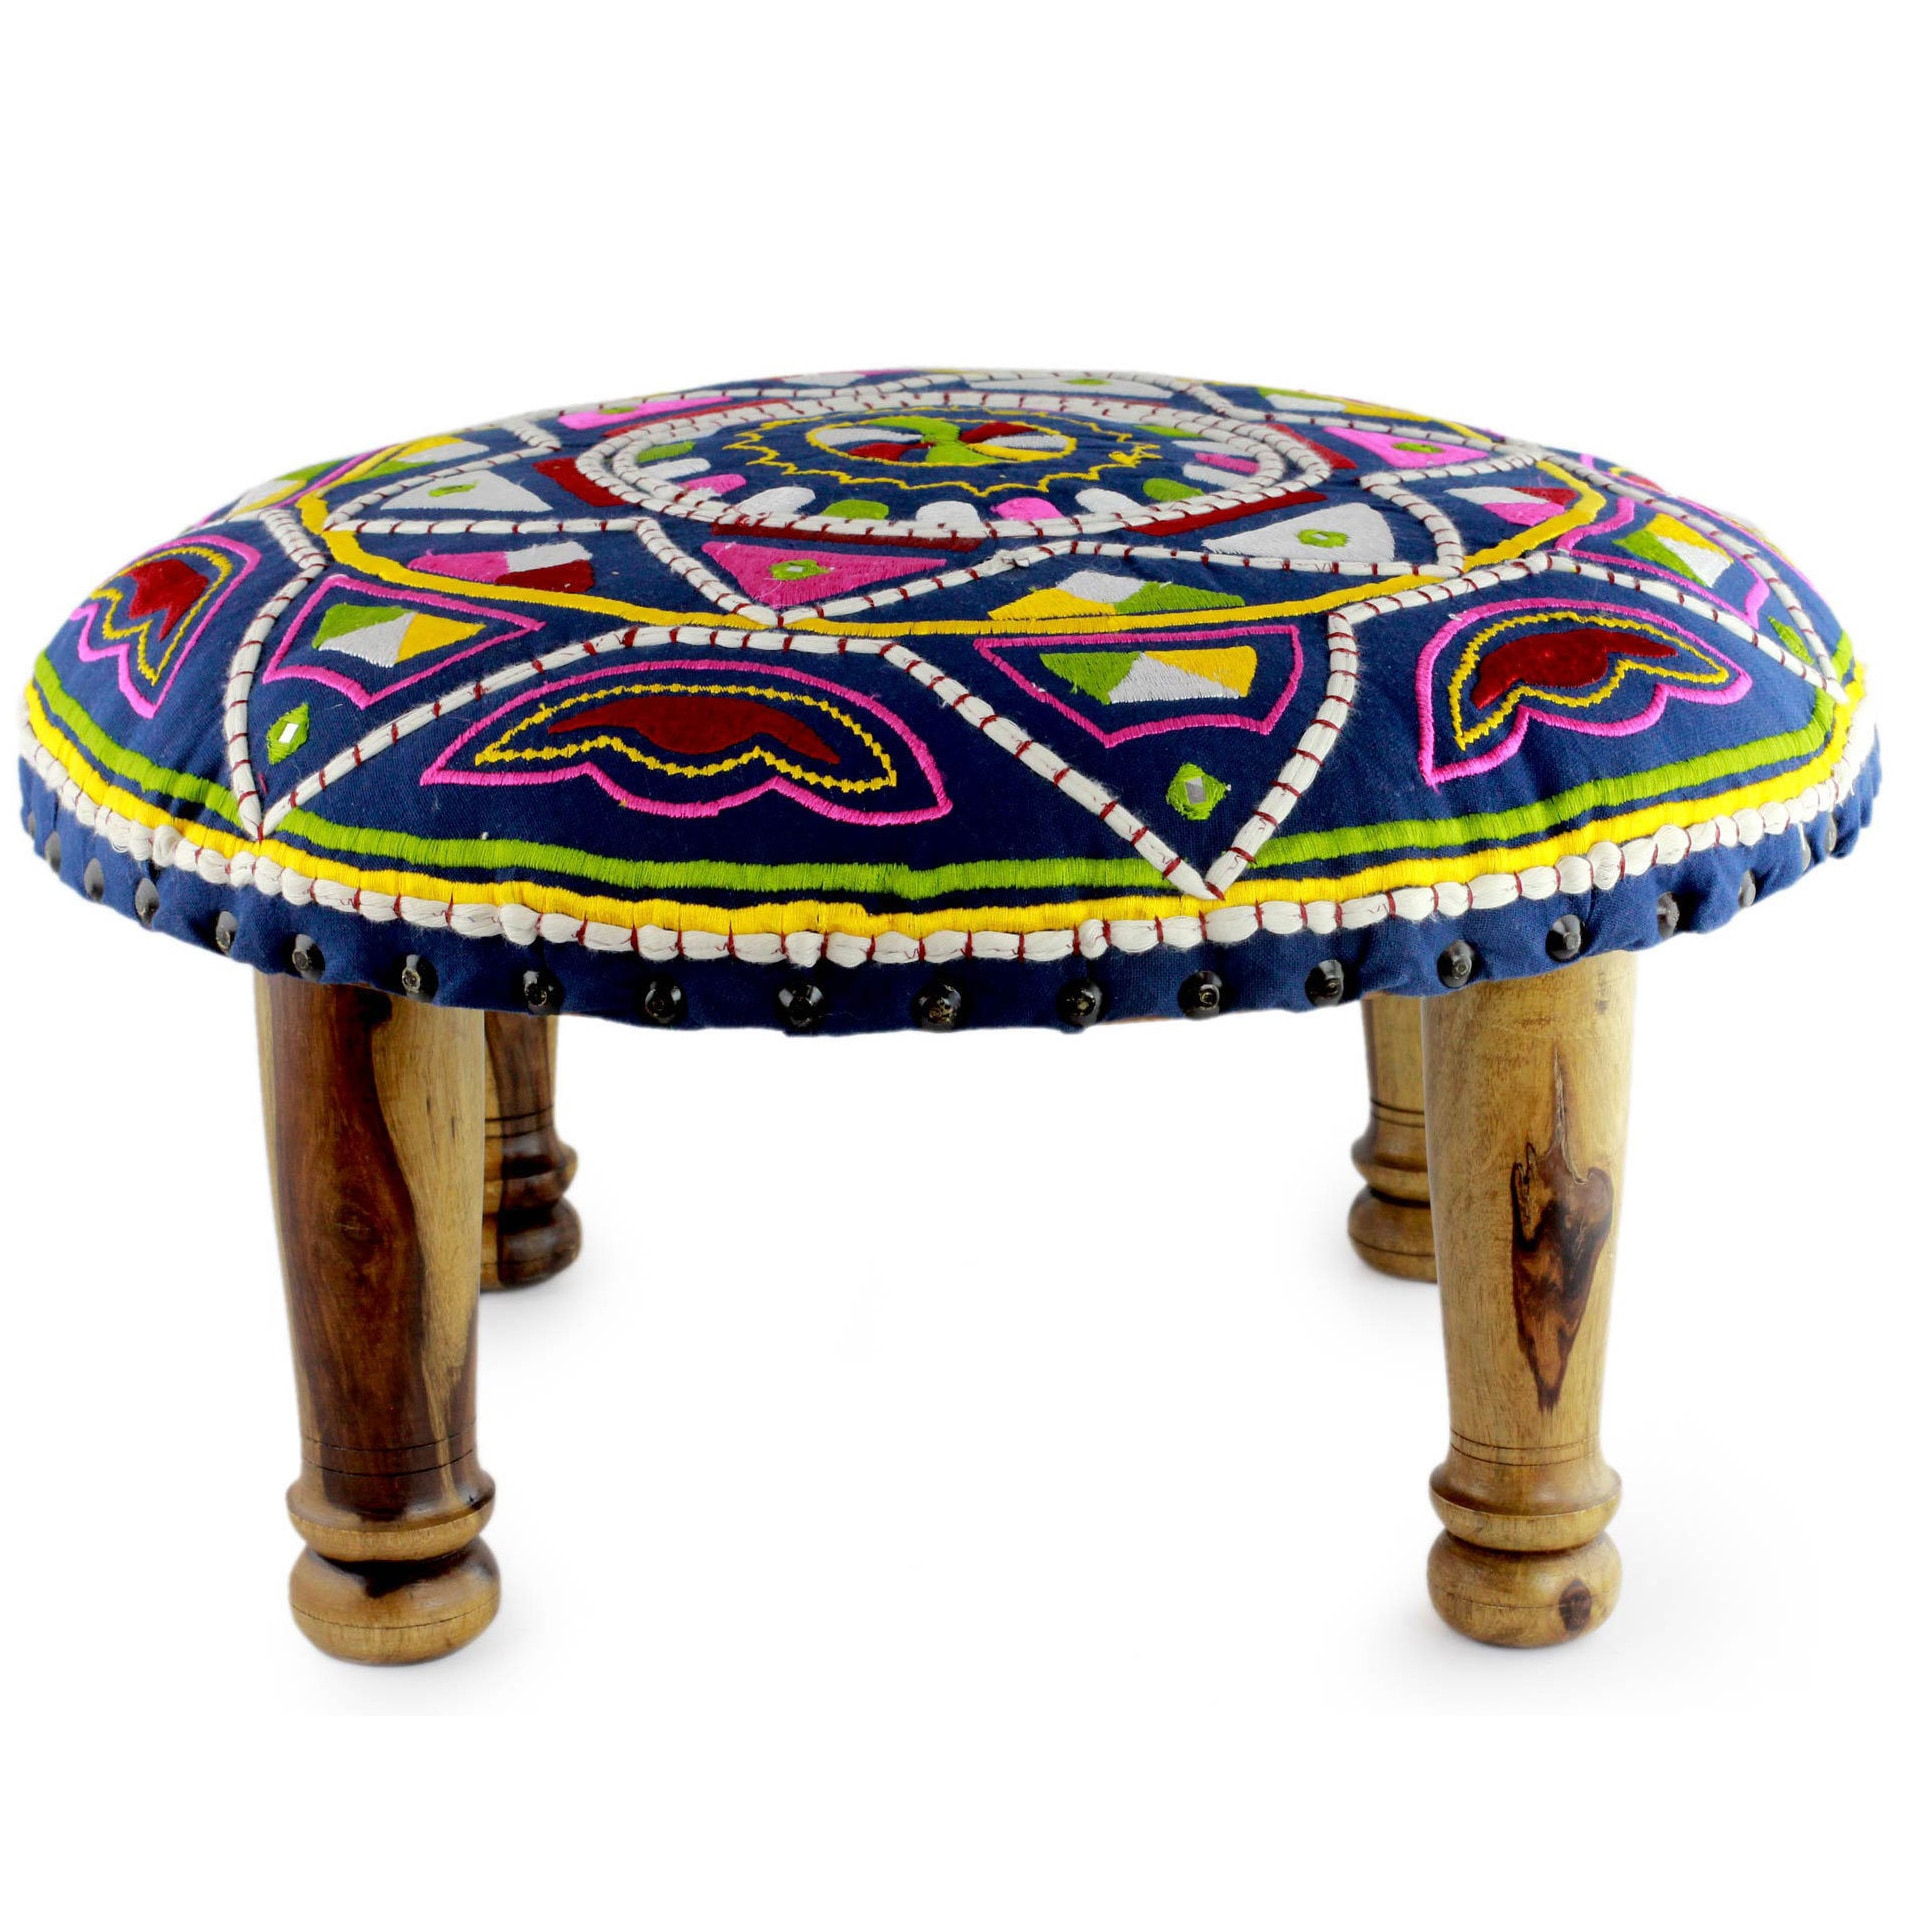 Shop handmade seesham wood cotton rayon rajasthan galaxy foot stool ottoman india on sale free shipping today overstock com 9447001